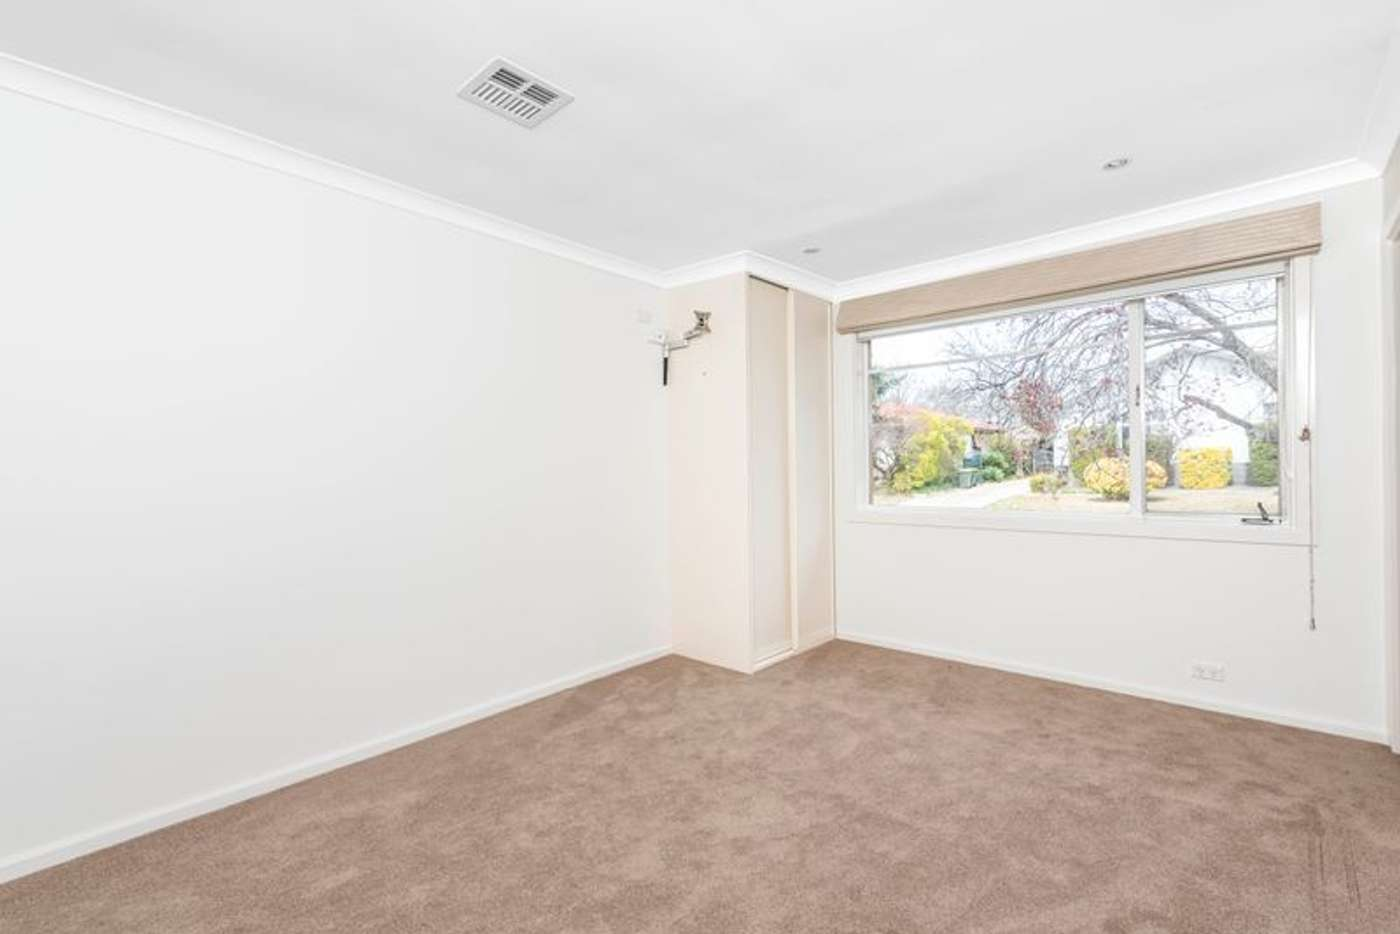 Seventh view of Homely house listing, 58 Dunstan Street, Curtin ACT 2605